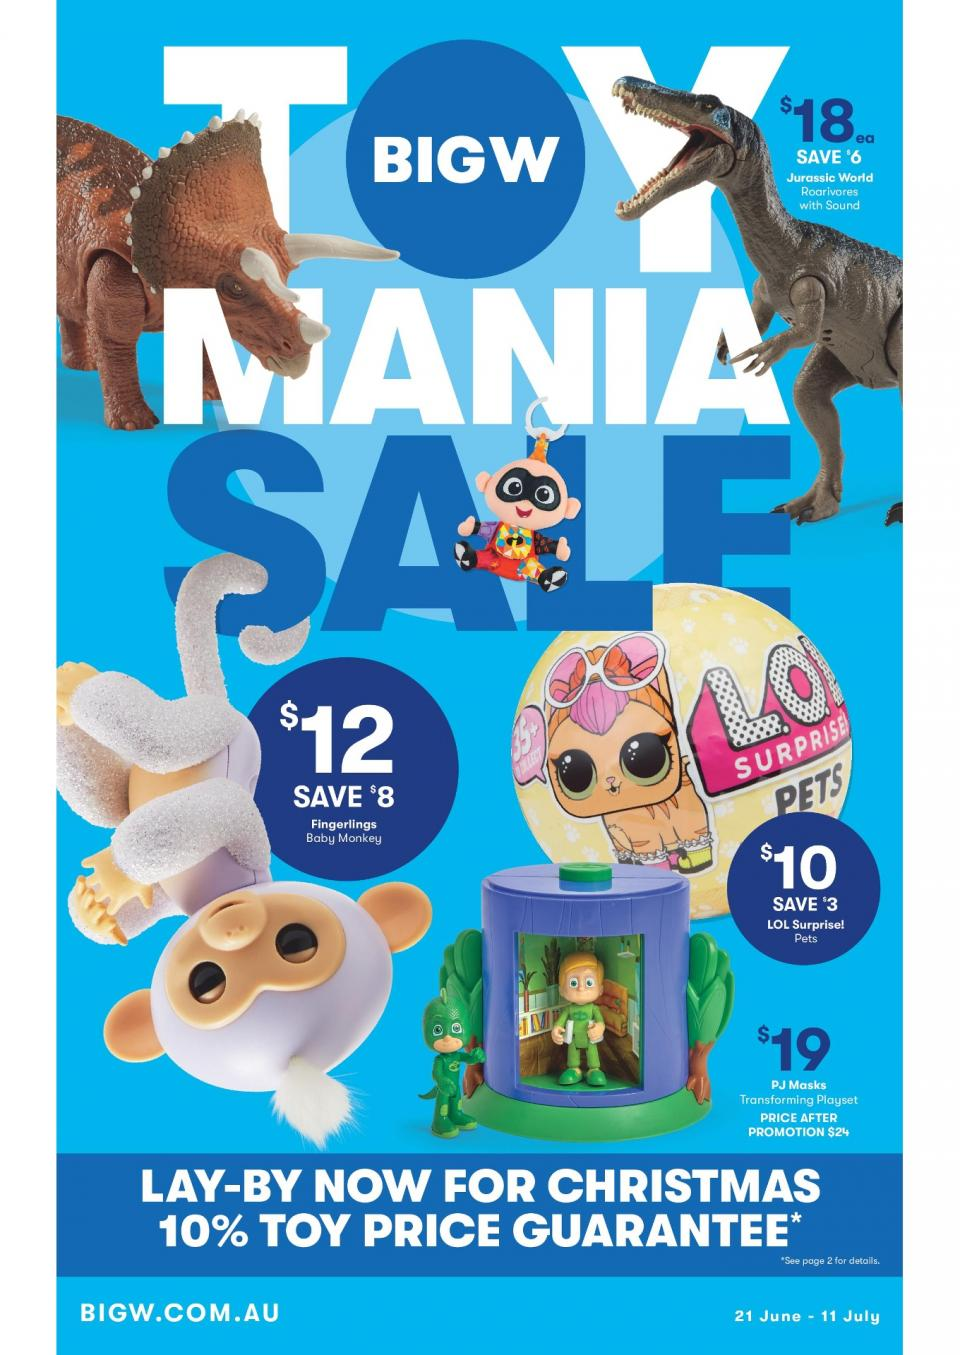 Big W Catalogue Toy Mania Sale June 2018 - Bargains AU